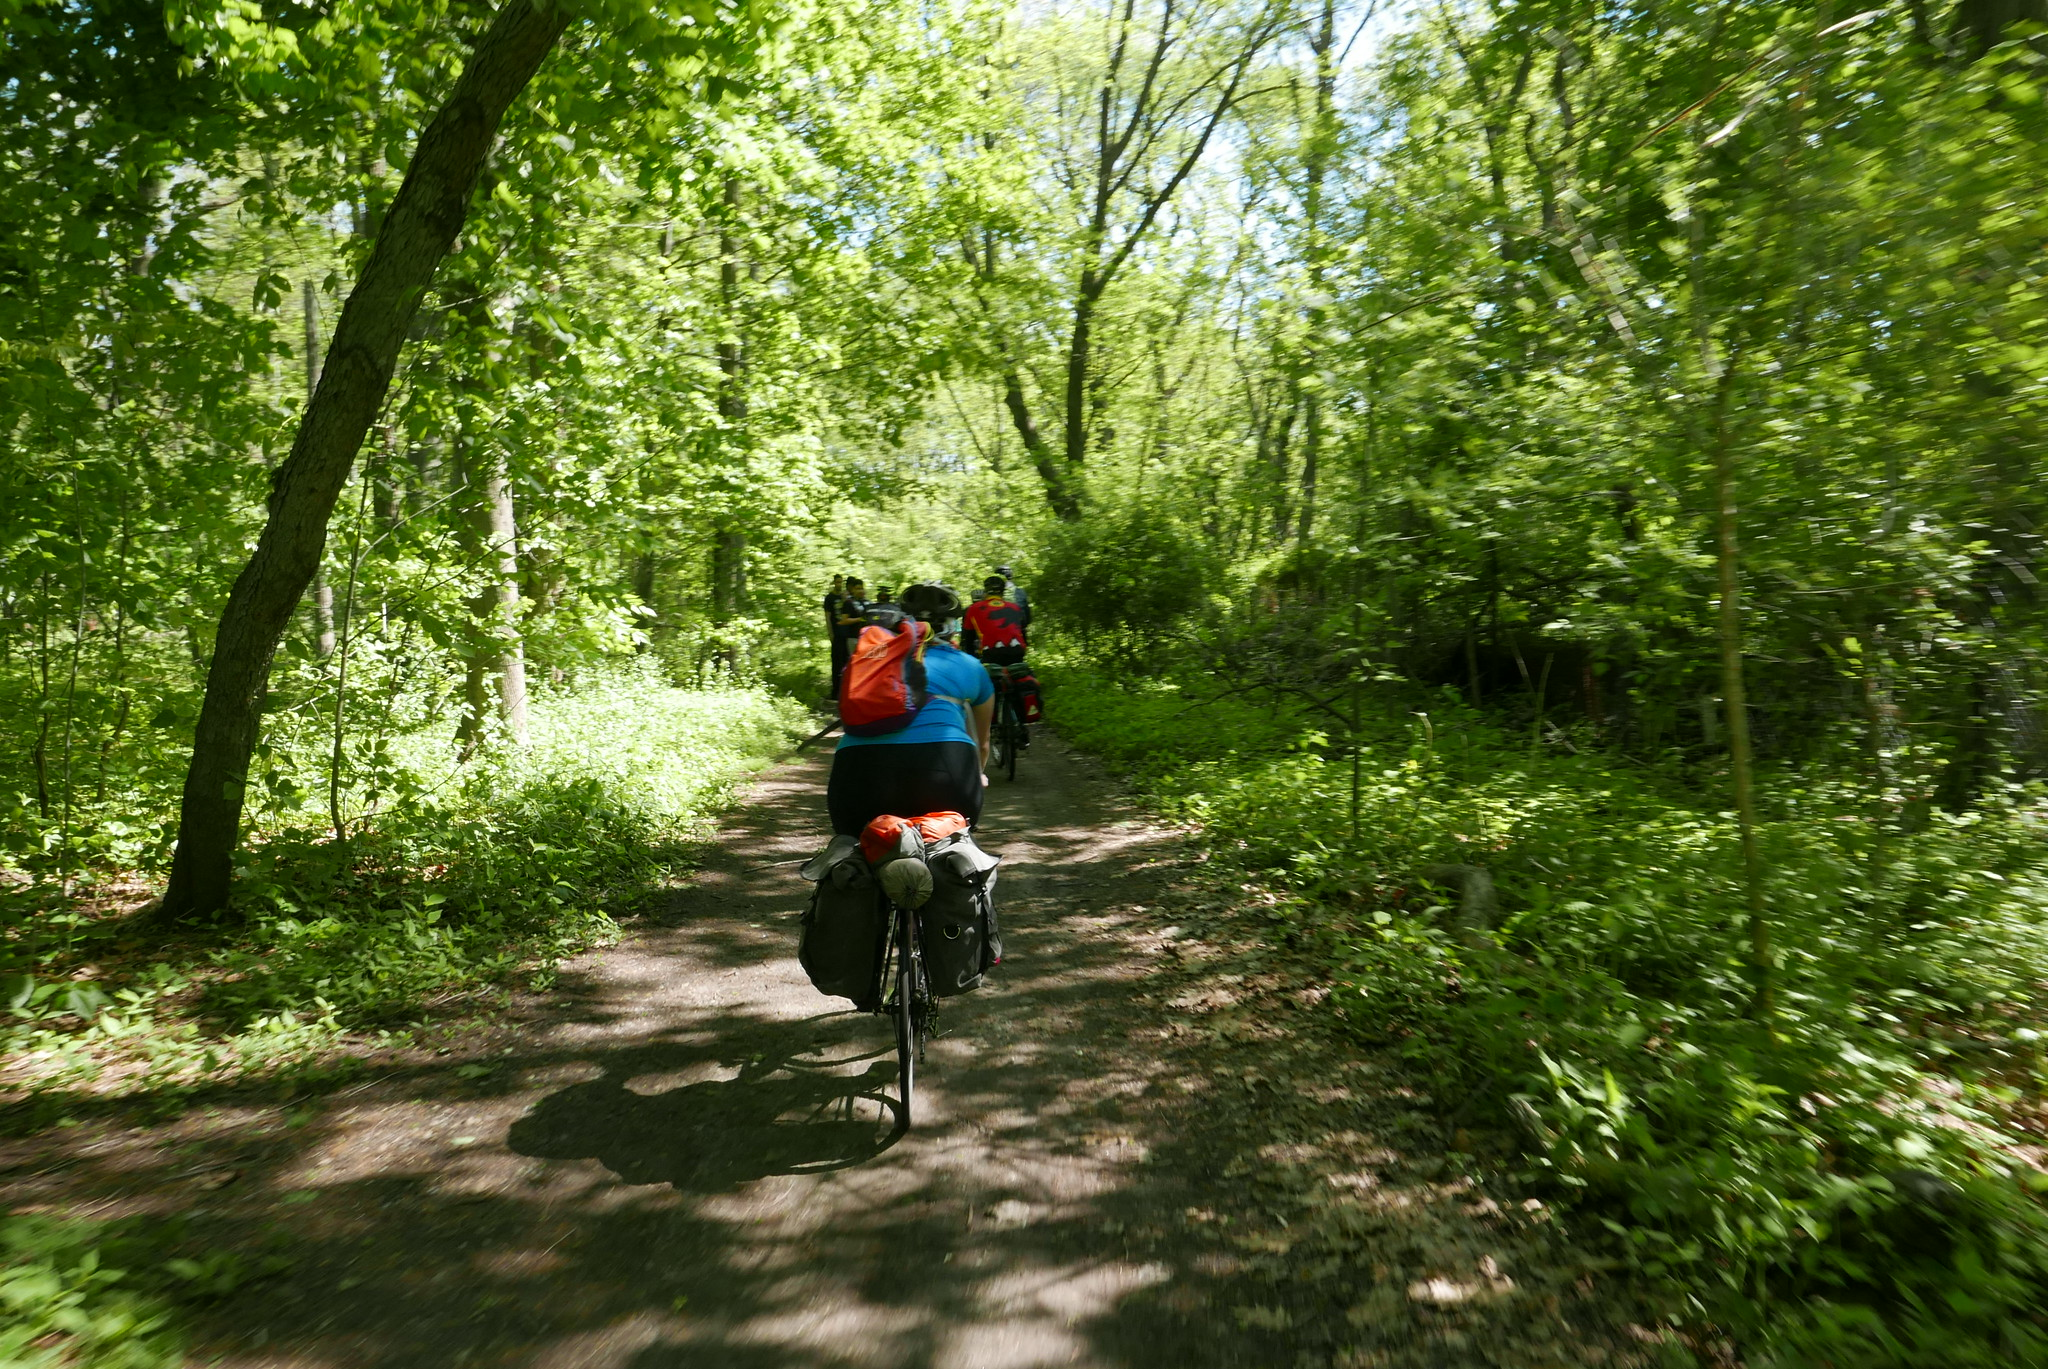 The group then venture north into Westchester County via a 1 mile strip of the Old Putnam Trail